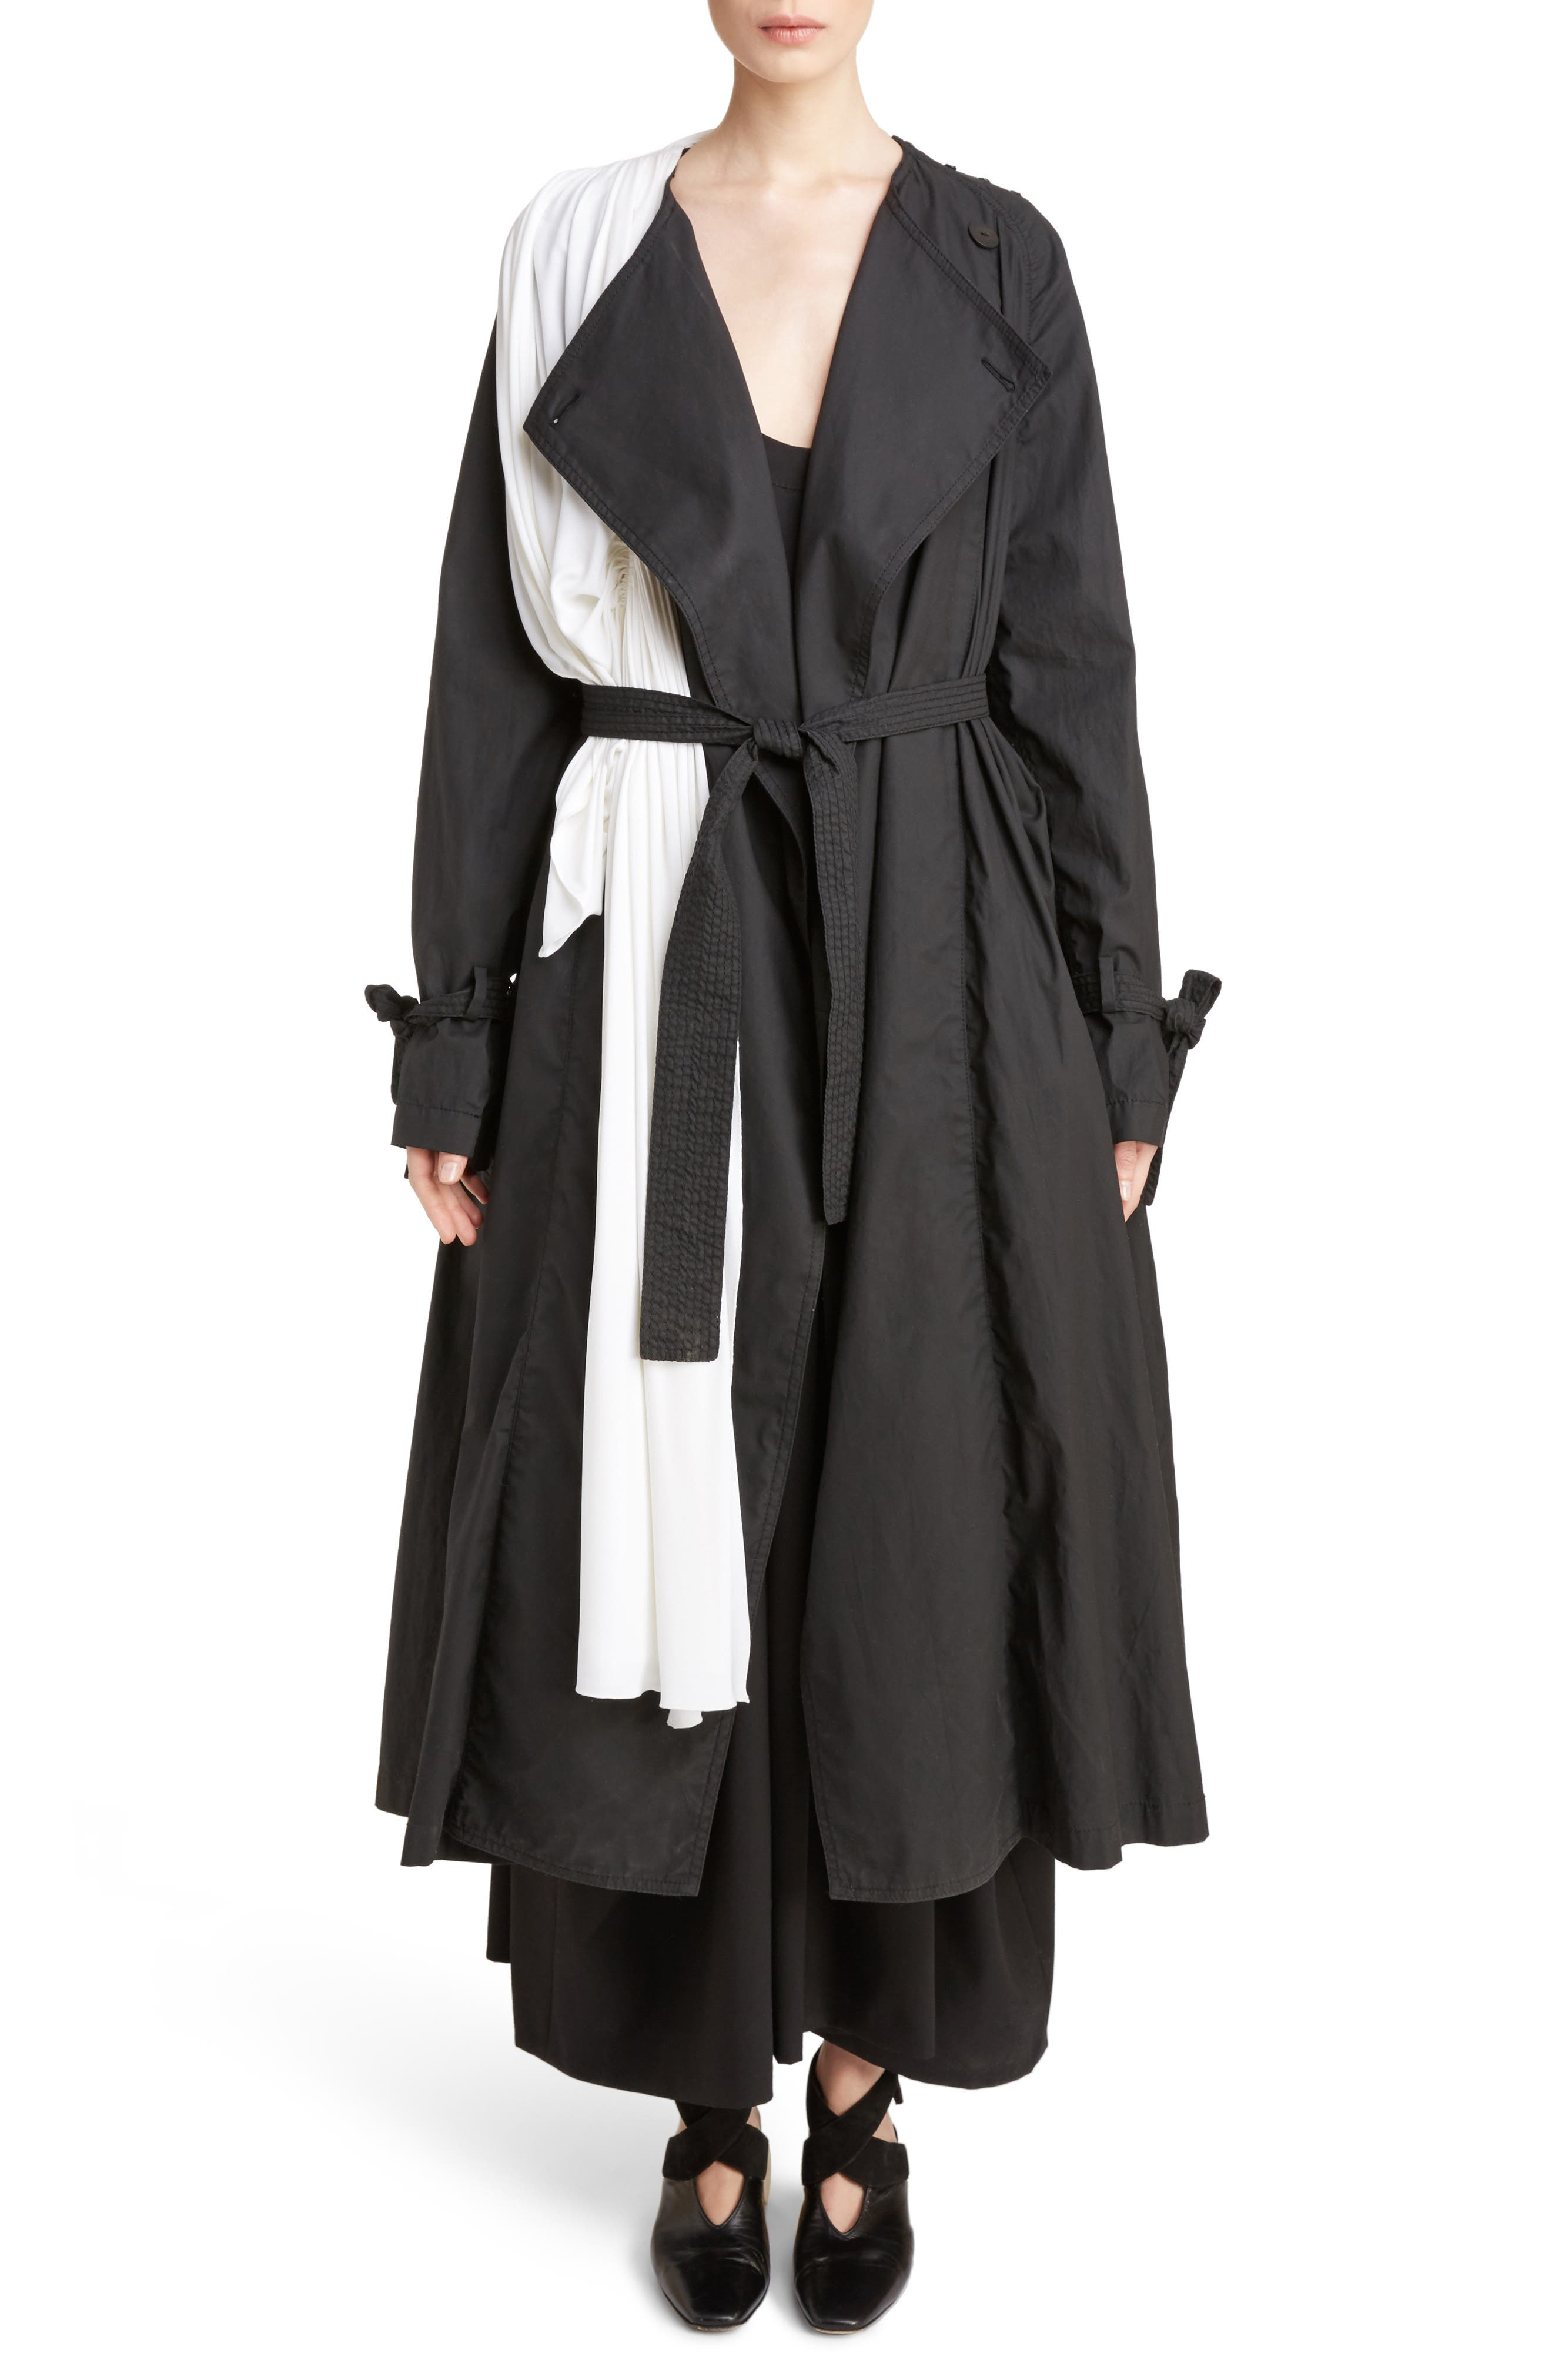 Main Image - J.W.ANDERSON Draped Collar Trench Coat